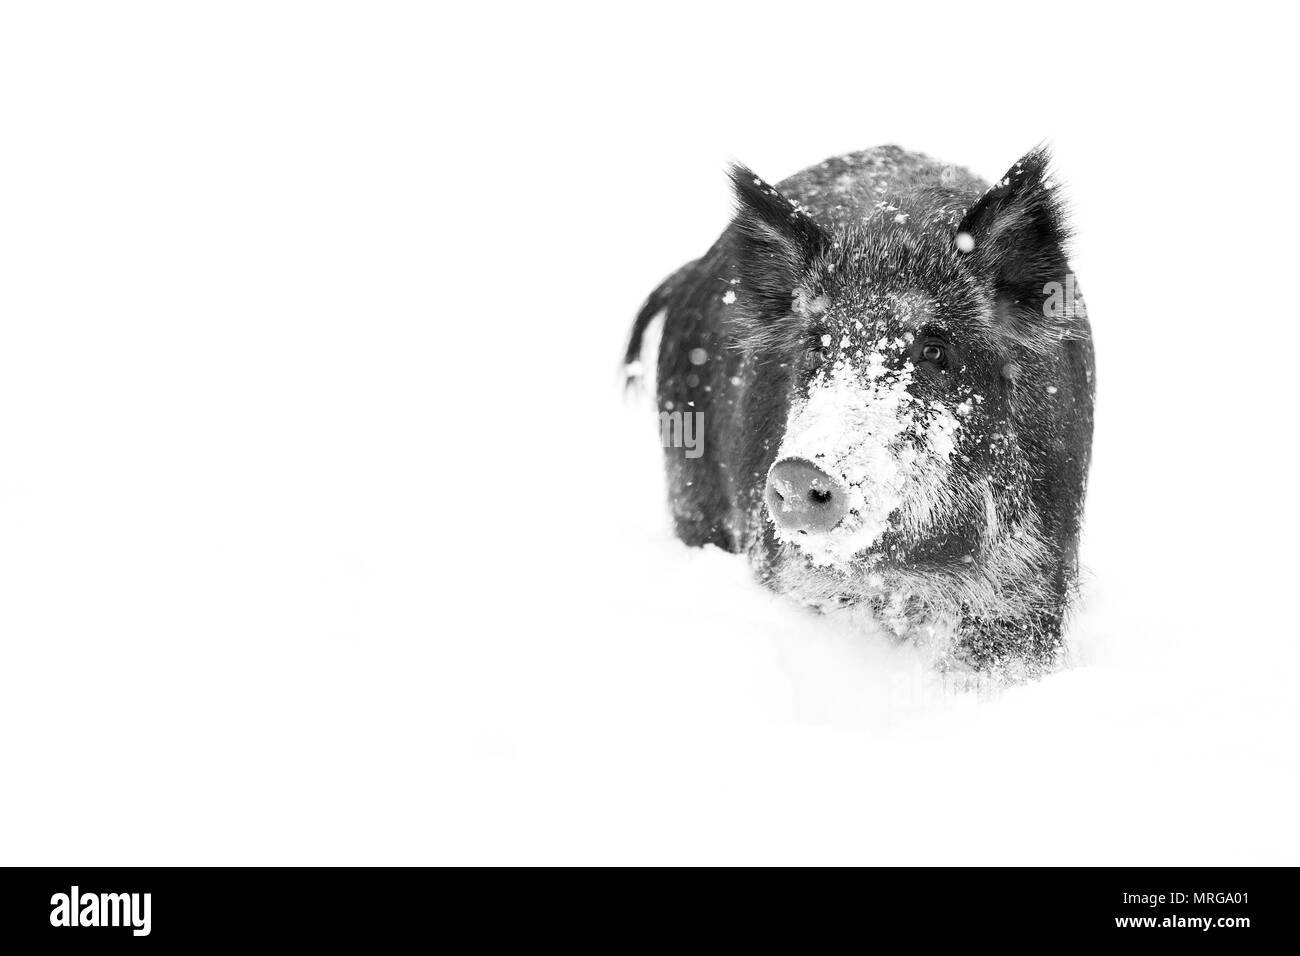 Wild boar standing in the winter snow in Canada - Stock Image